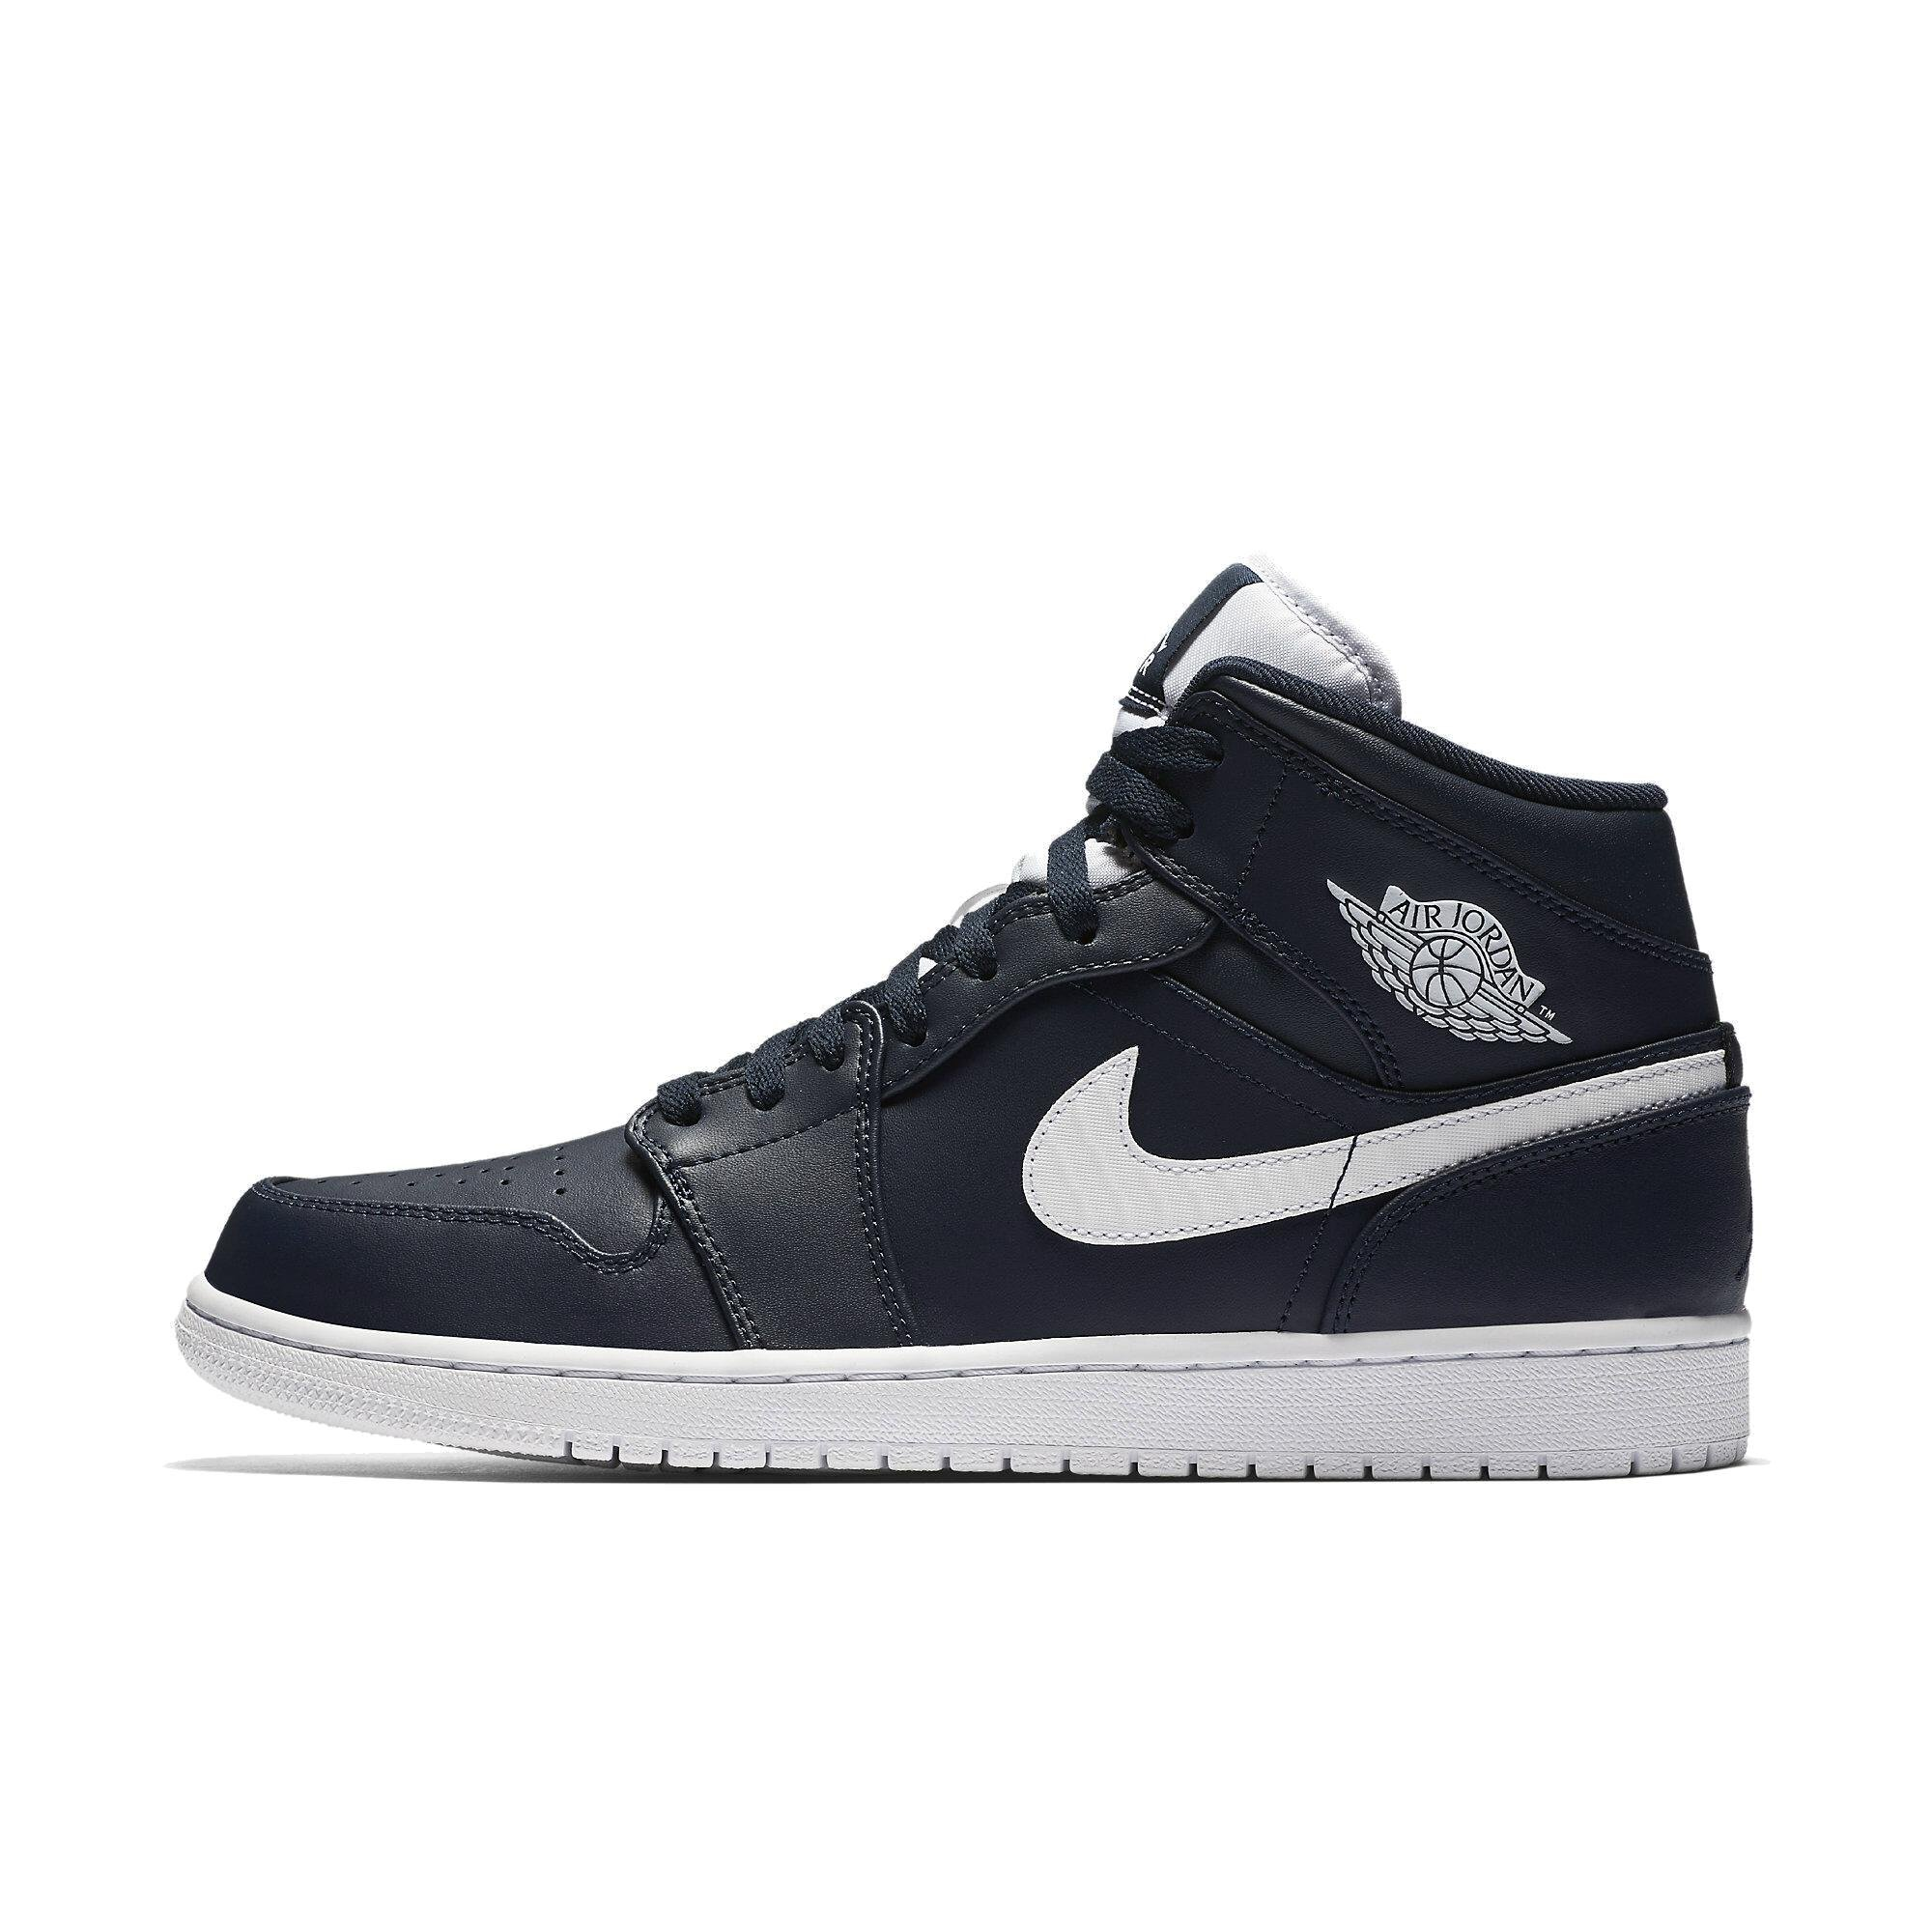 554724-402 MEN AIR 1 MID JORDAN OBSIDIAN WHITE